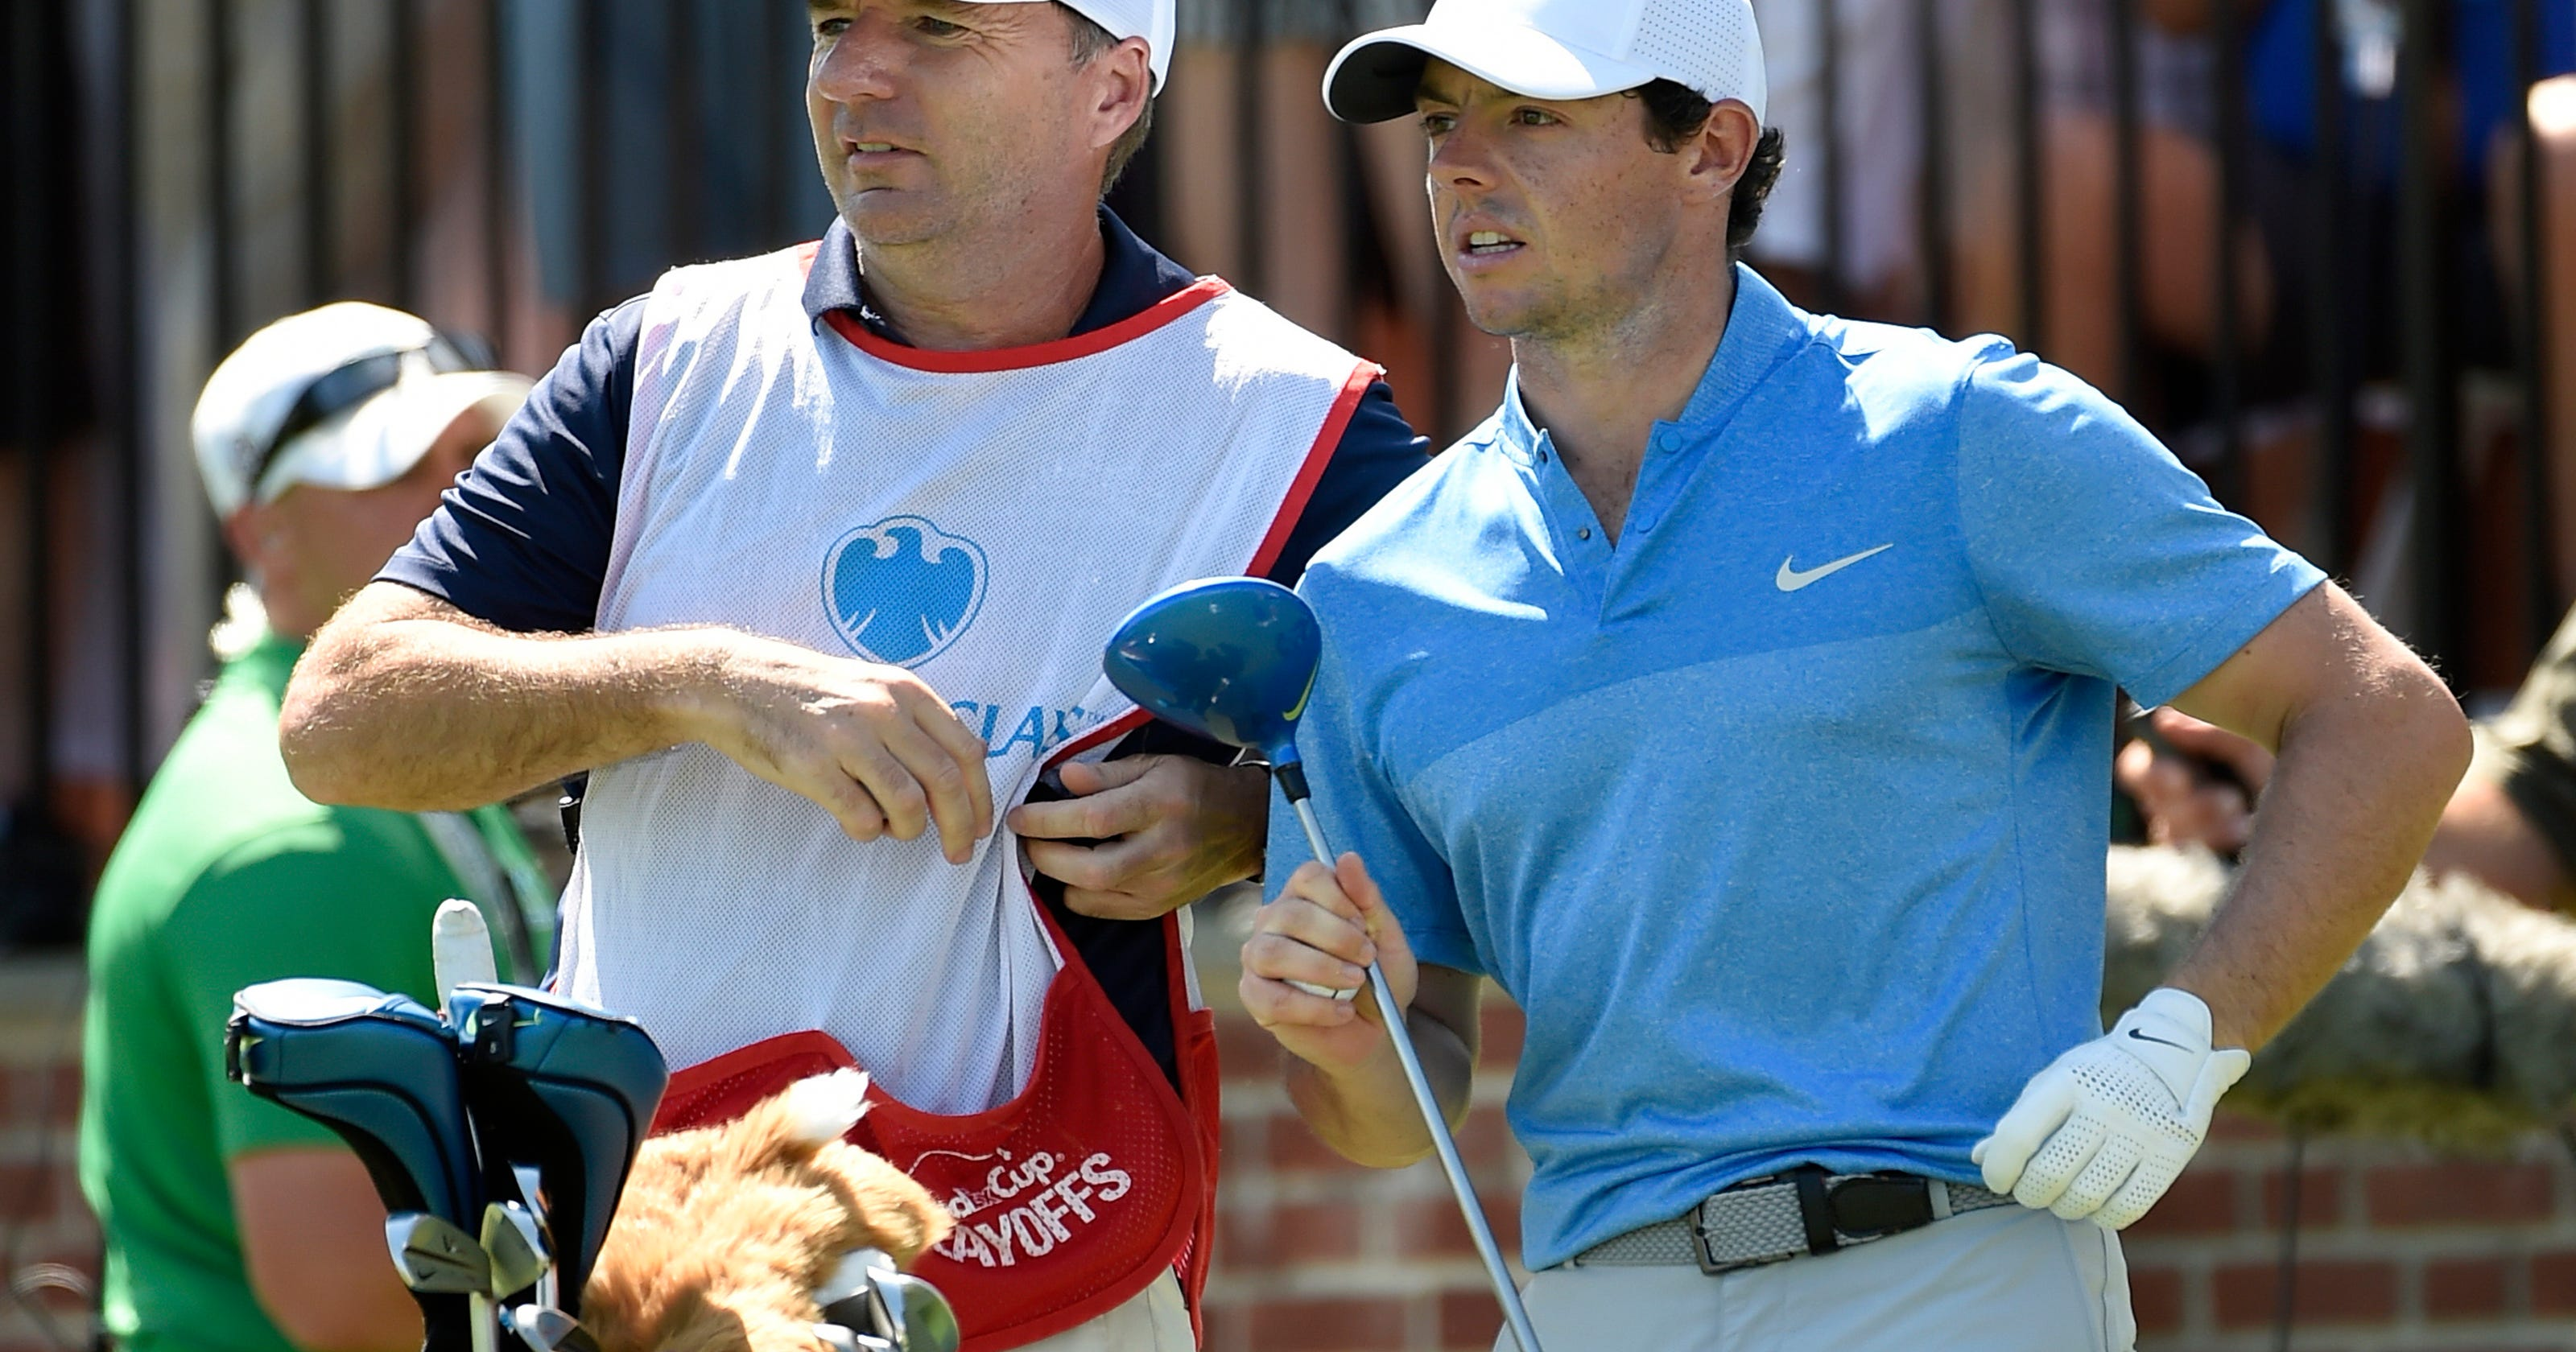 Rory McIlroy s caddie cashes in on FedEx Cup 37f45548b4f